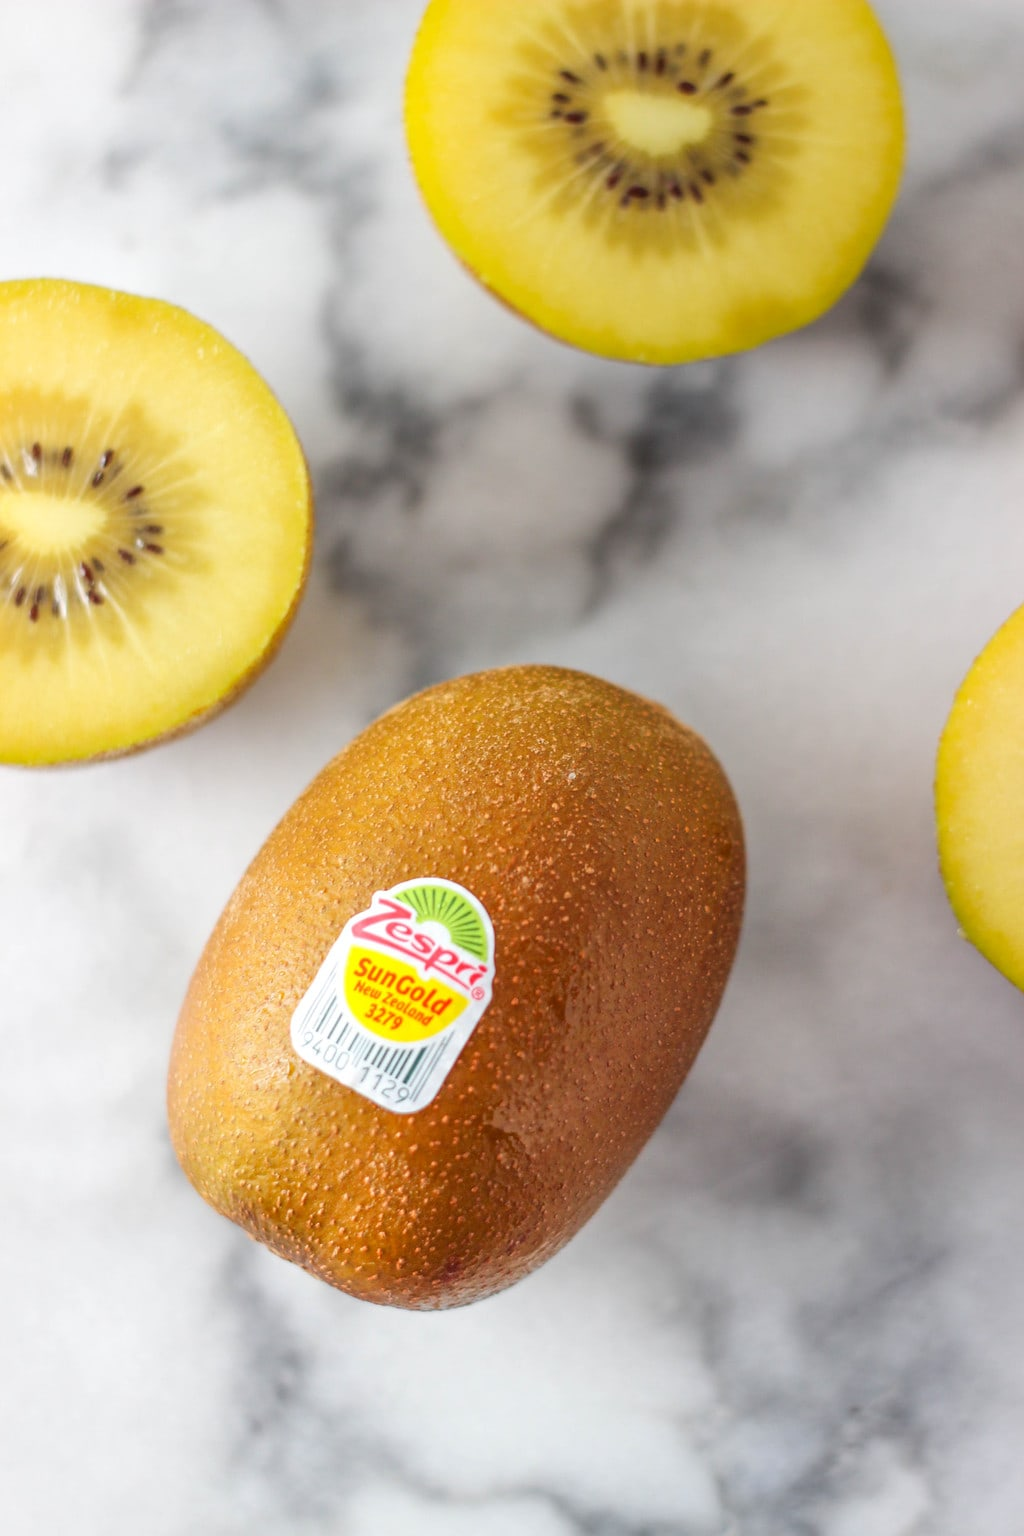 zespri the kiwi fruit industry The main aim for the branding was to differentiate zespri kiwifruit from the other major brands in the global market research indicated that kiwifruit consumers felt a strong emotional connection to the fruit.